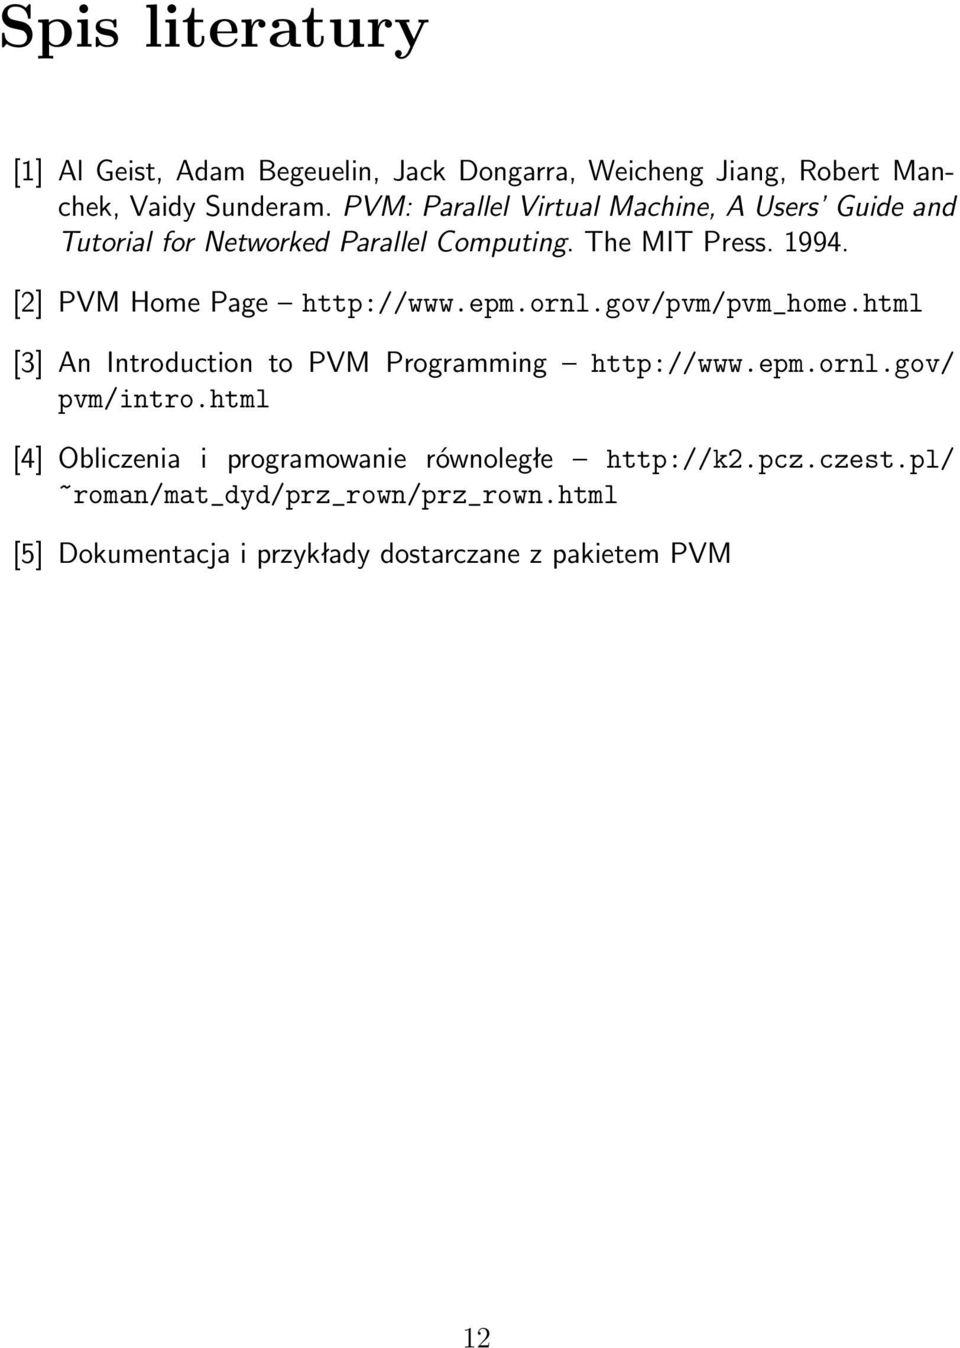 [2] PVM Home Page http://www.epm.ornl.gov/pvm/pvm_home.html [3] An Introduction to PVM Programming http://www.epm.ornl.gov/ pvm/intro.